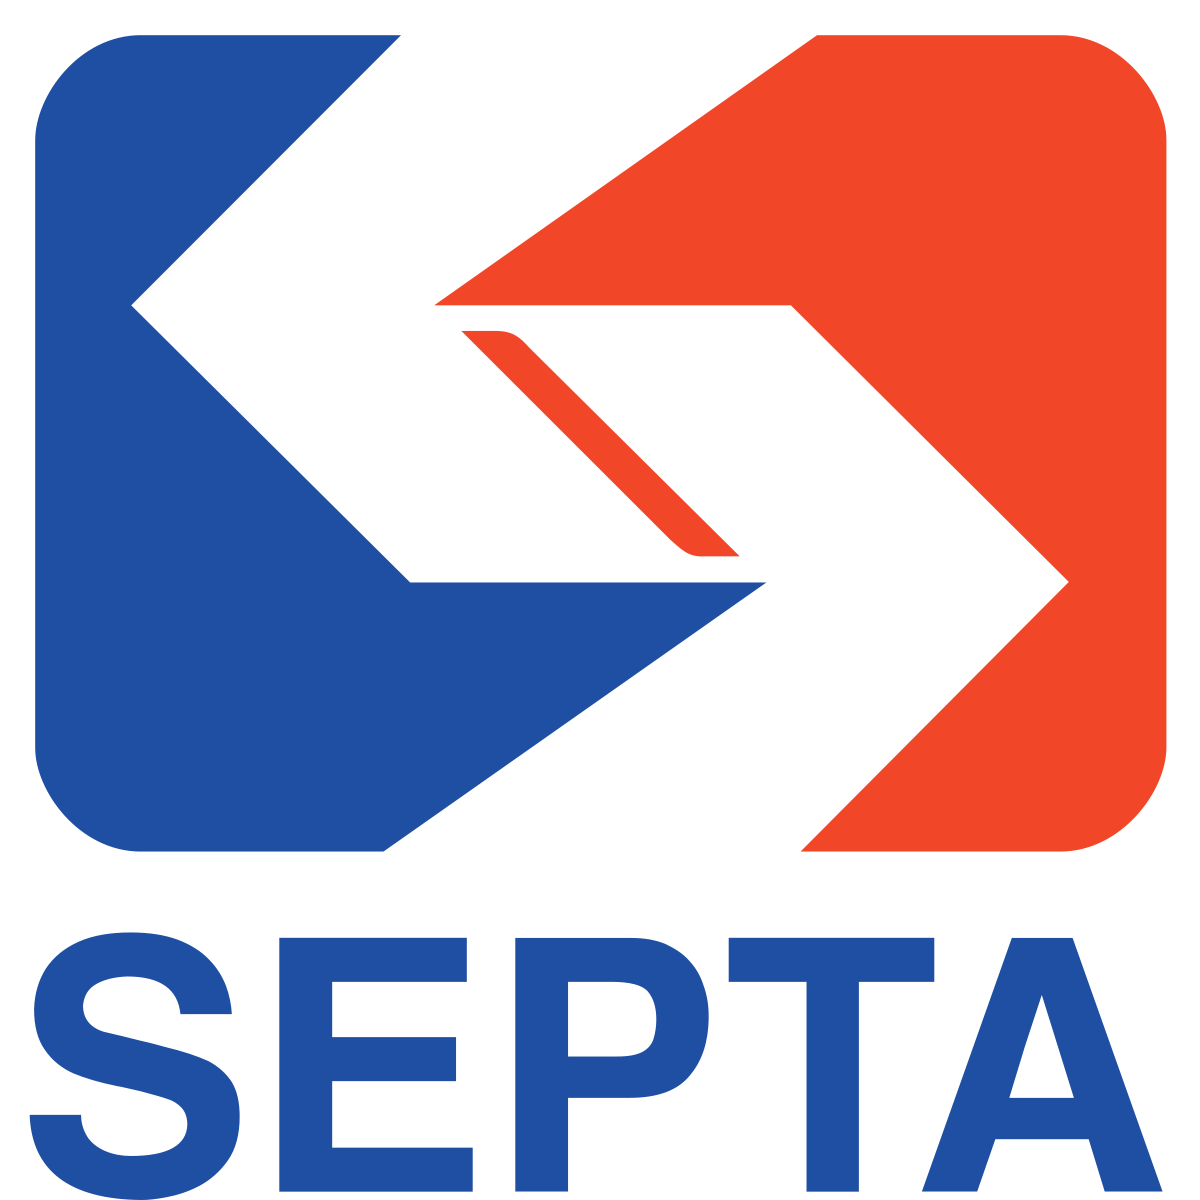 SEPTA Terminals and Buses